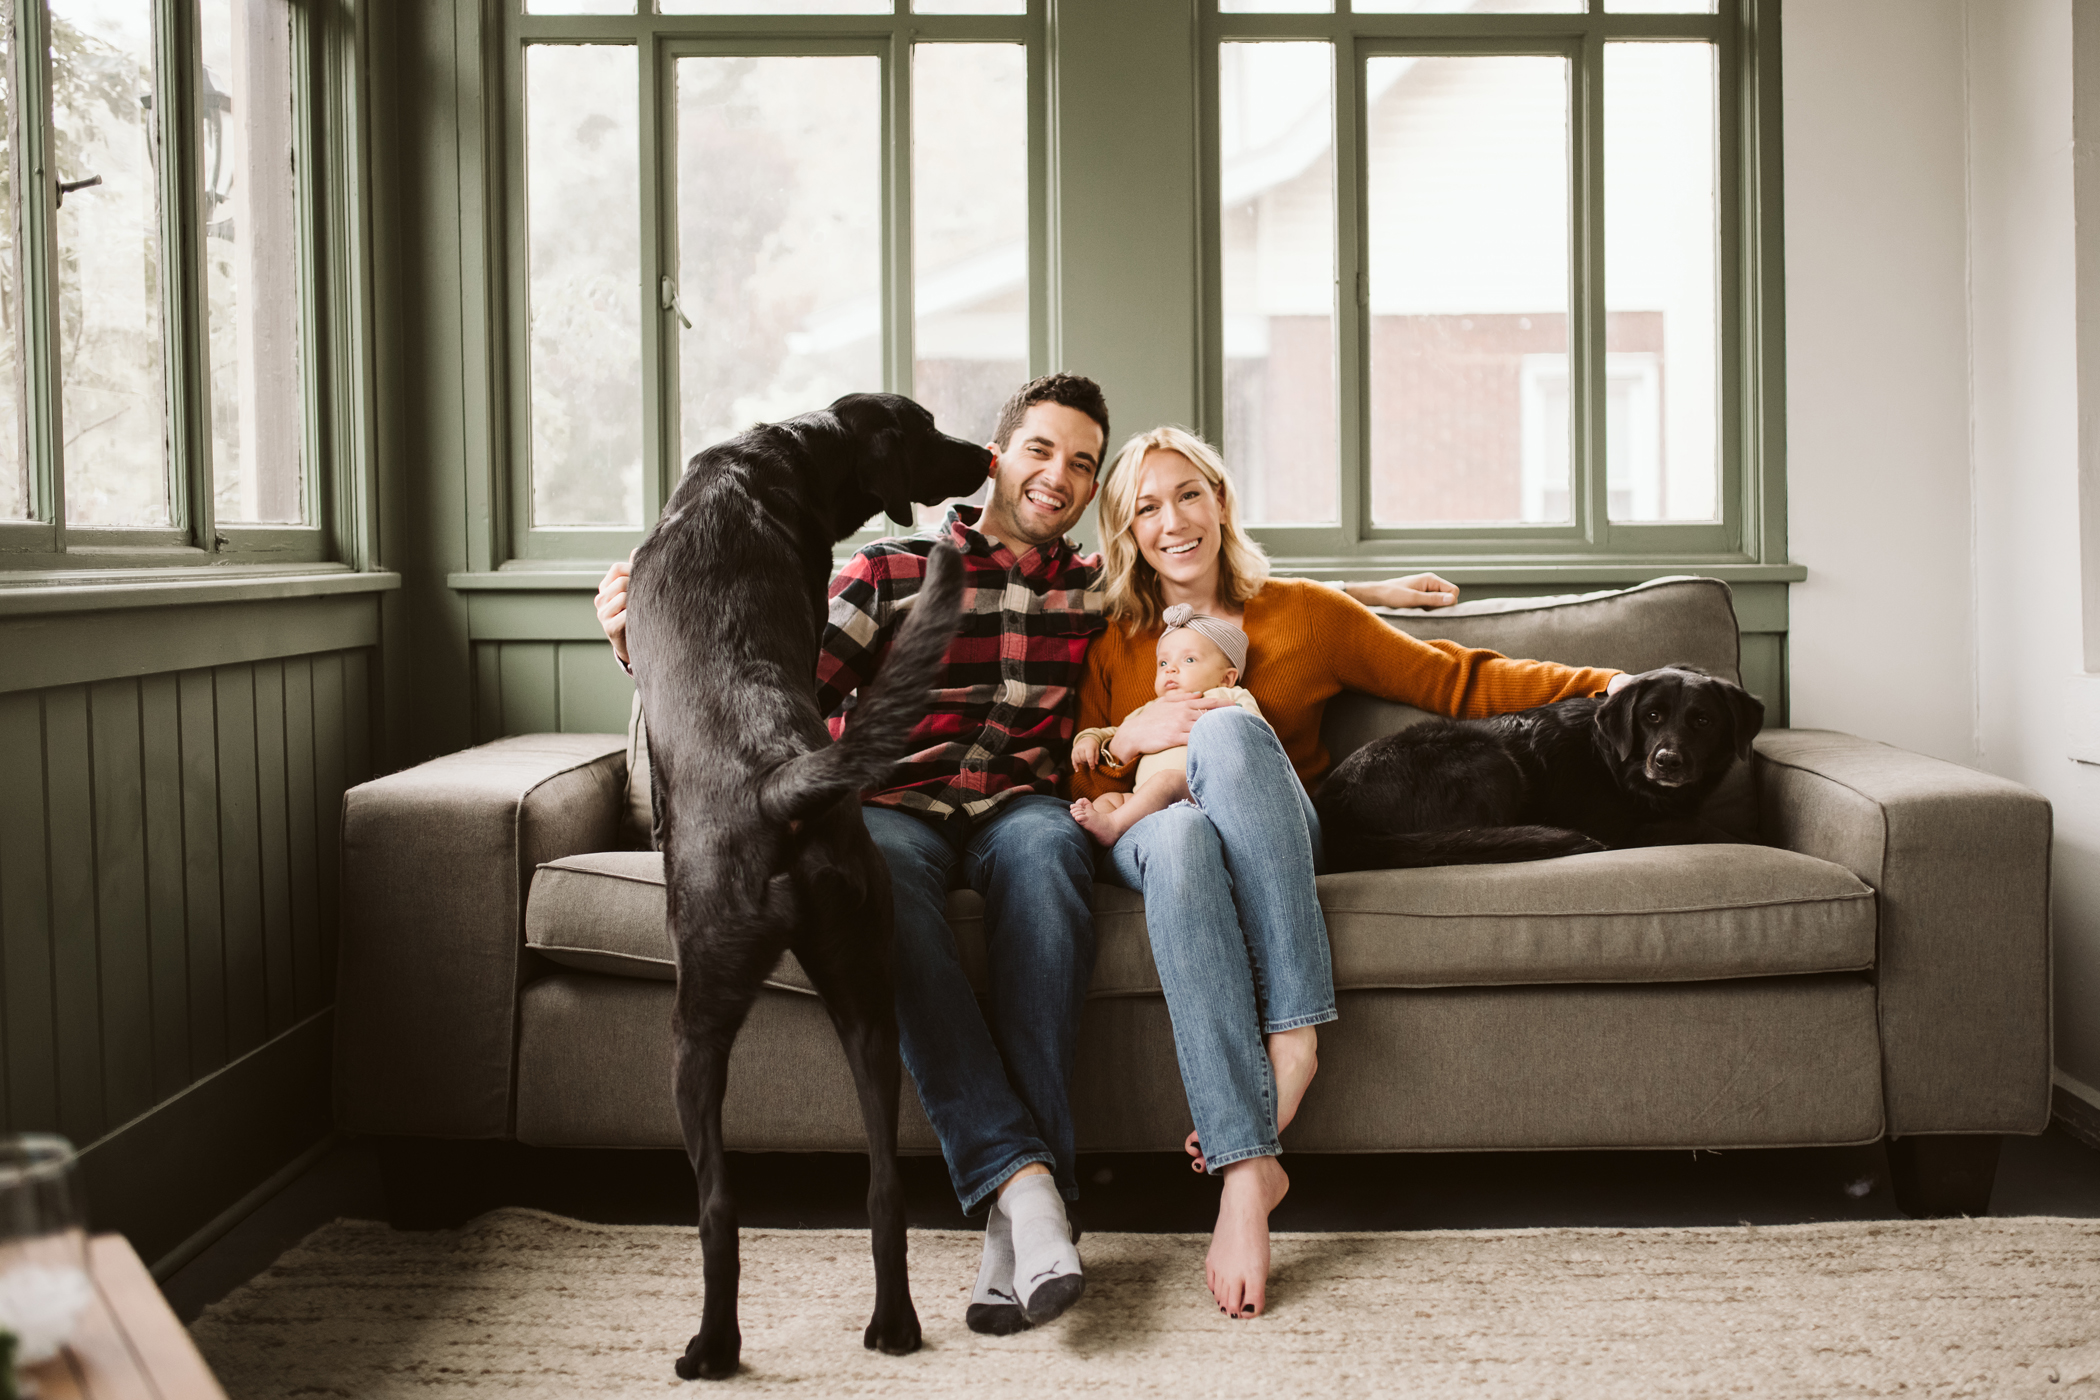 Lifestyle portrait of a family holding their newborn baby with their two black dogs. Photo by Laura Mares Photography.